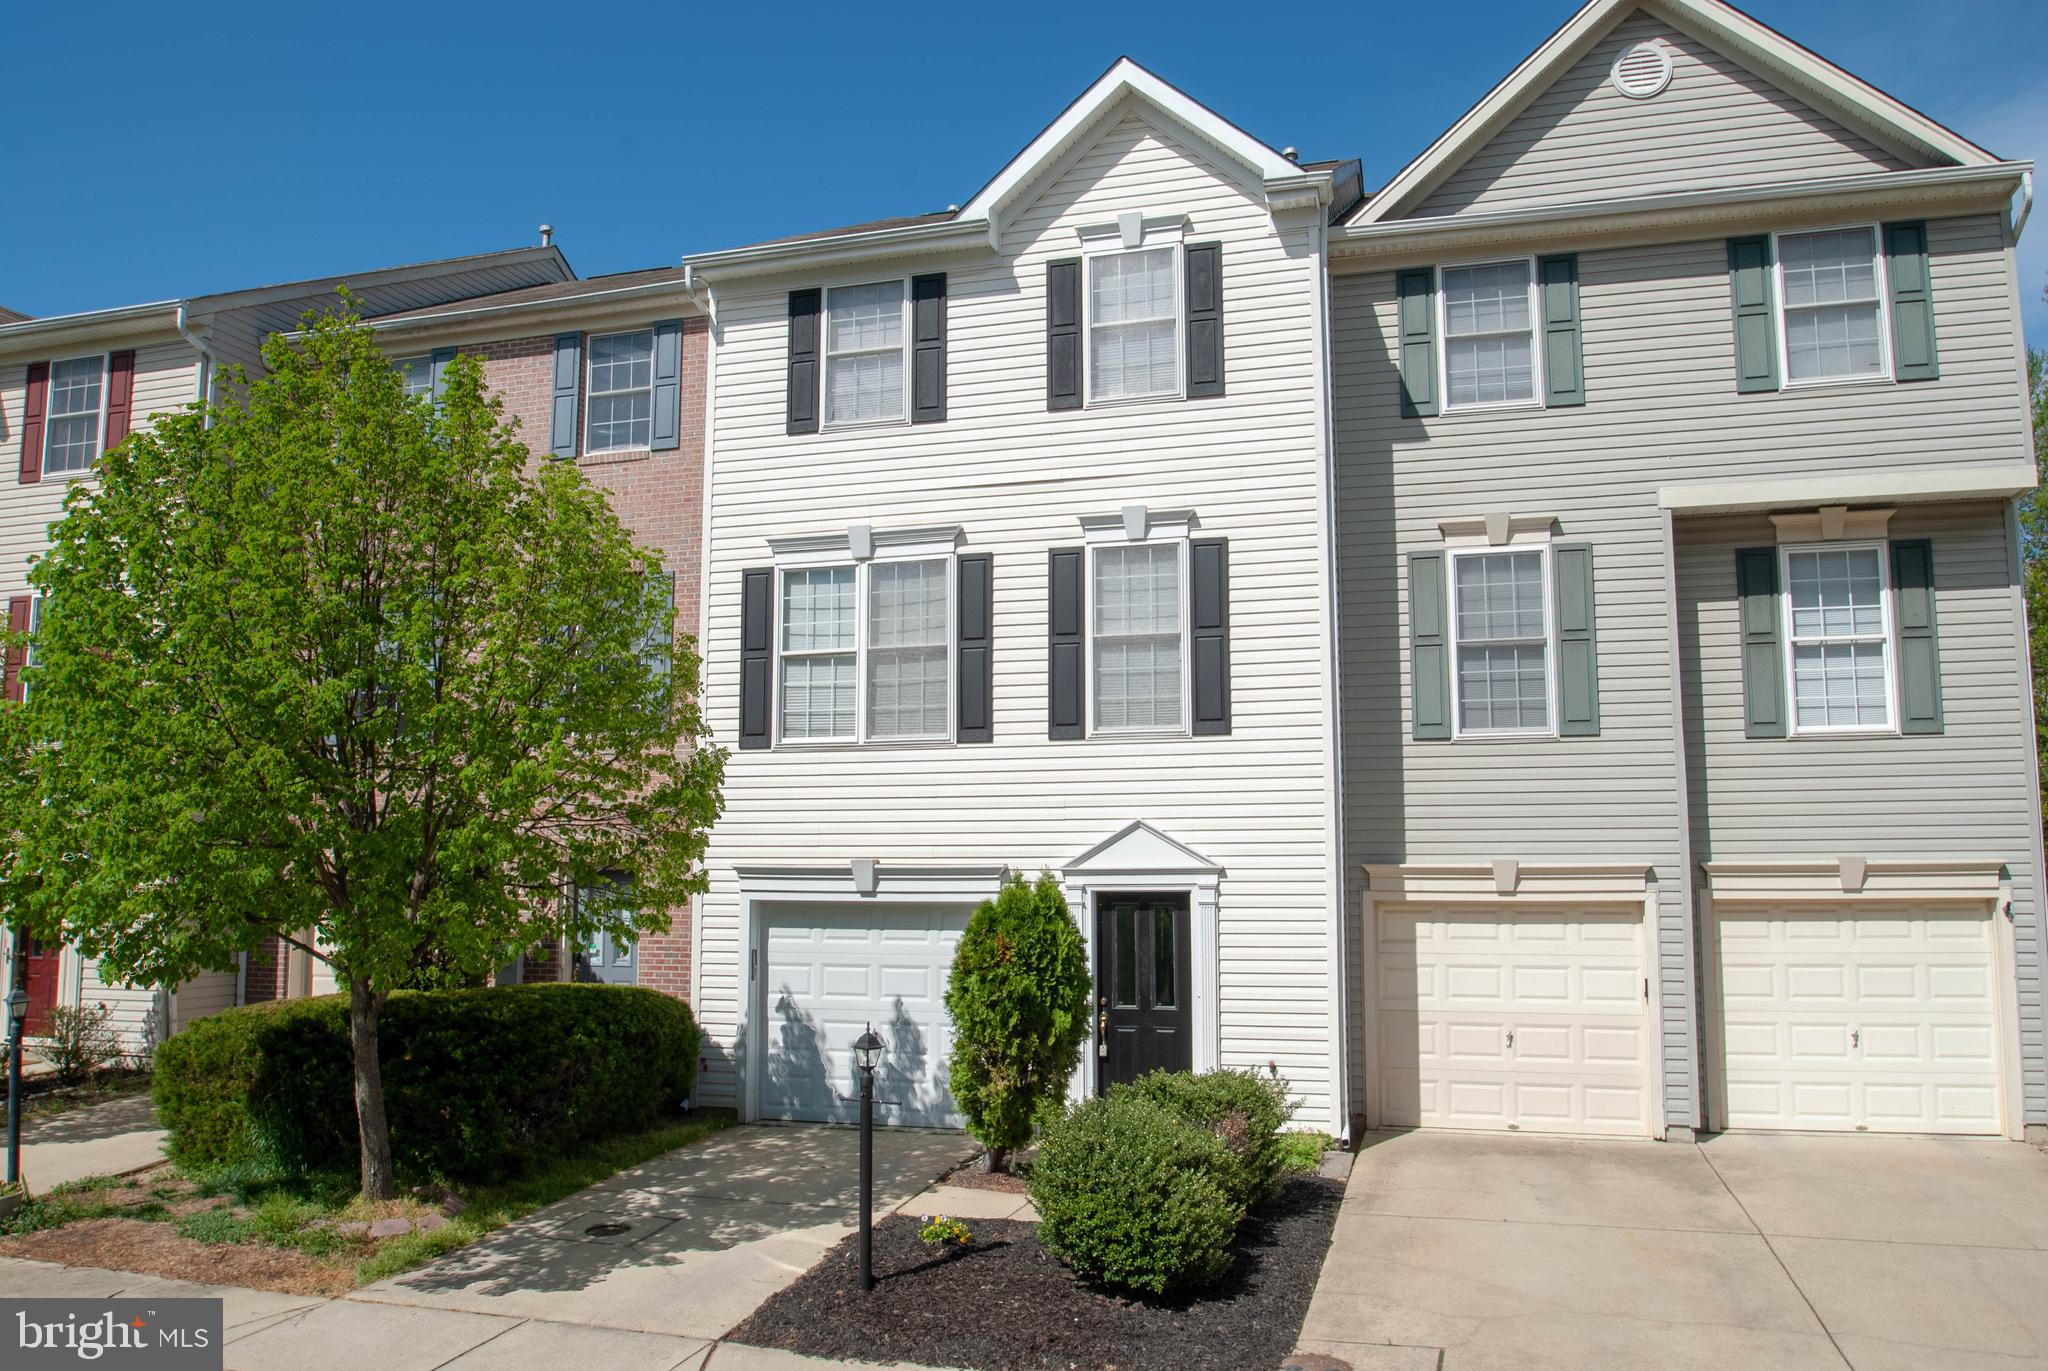 Fabulous and spacious 3 level townhouse in sought after River Oaks. Bump outs on all levels.  Gourmet open kitchen leading to family area/ sun room with gas fireplace opening to private deck with view to nature.  Large additional family room leading to walk out yard.  Spacious garage with additional driveway parking.  Ideal location close to shopping, commuting, dining! Open Sunday 1-3.